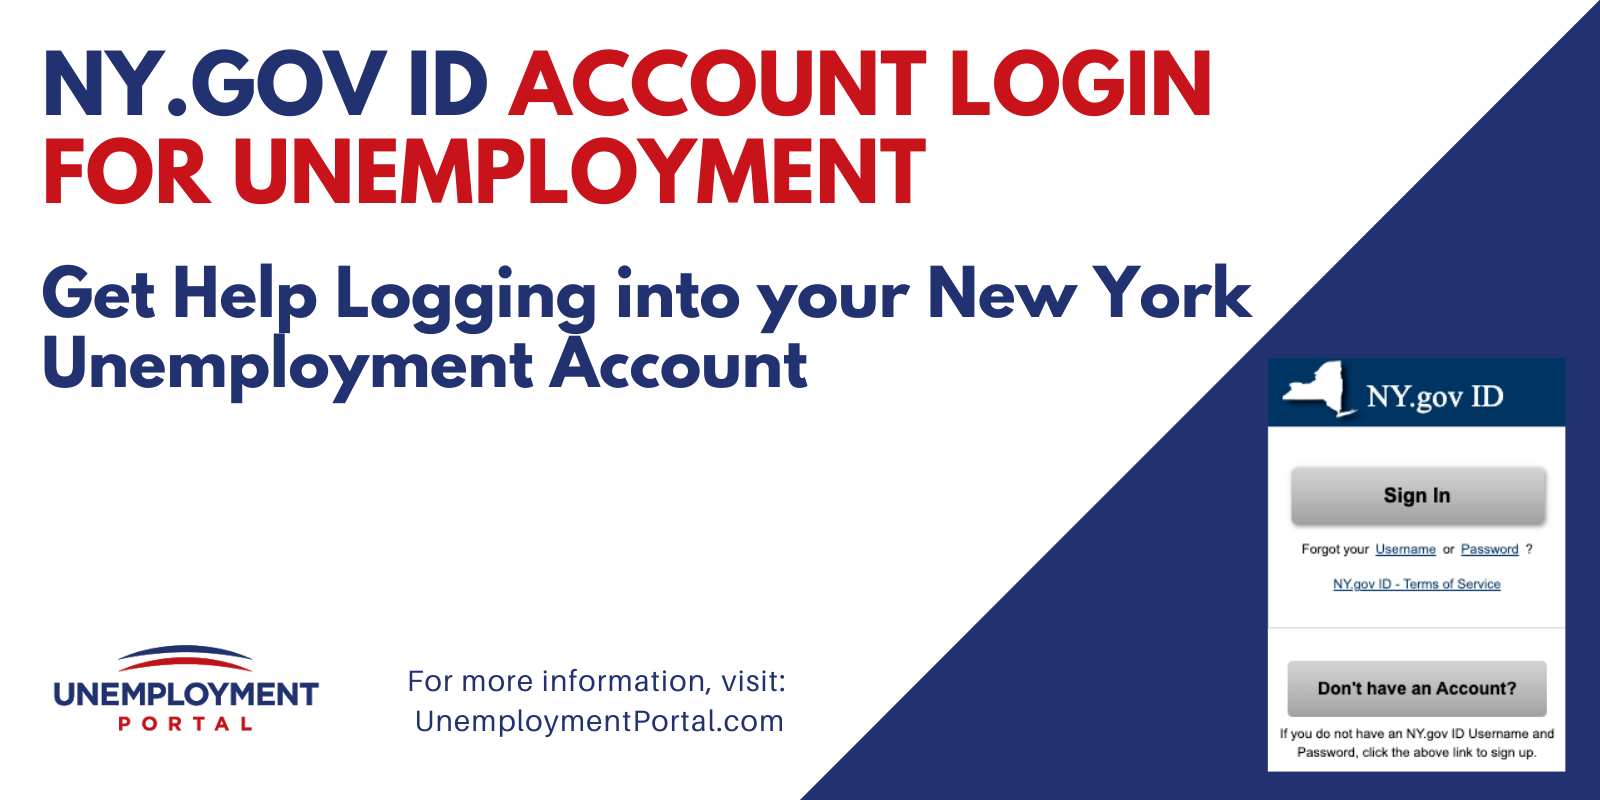 """""""NY.gov ID Account Login for Unemployment"""""""